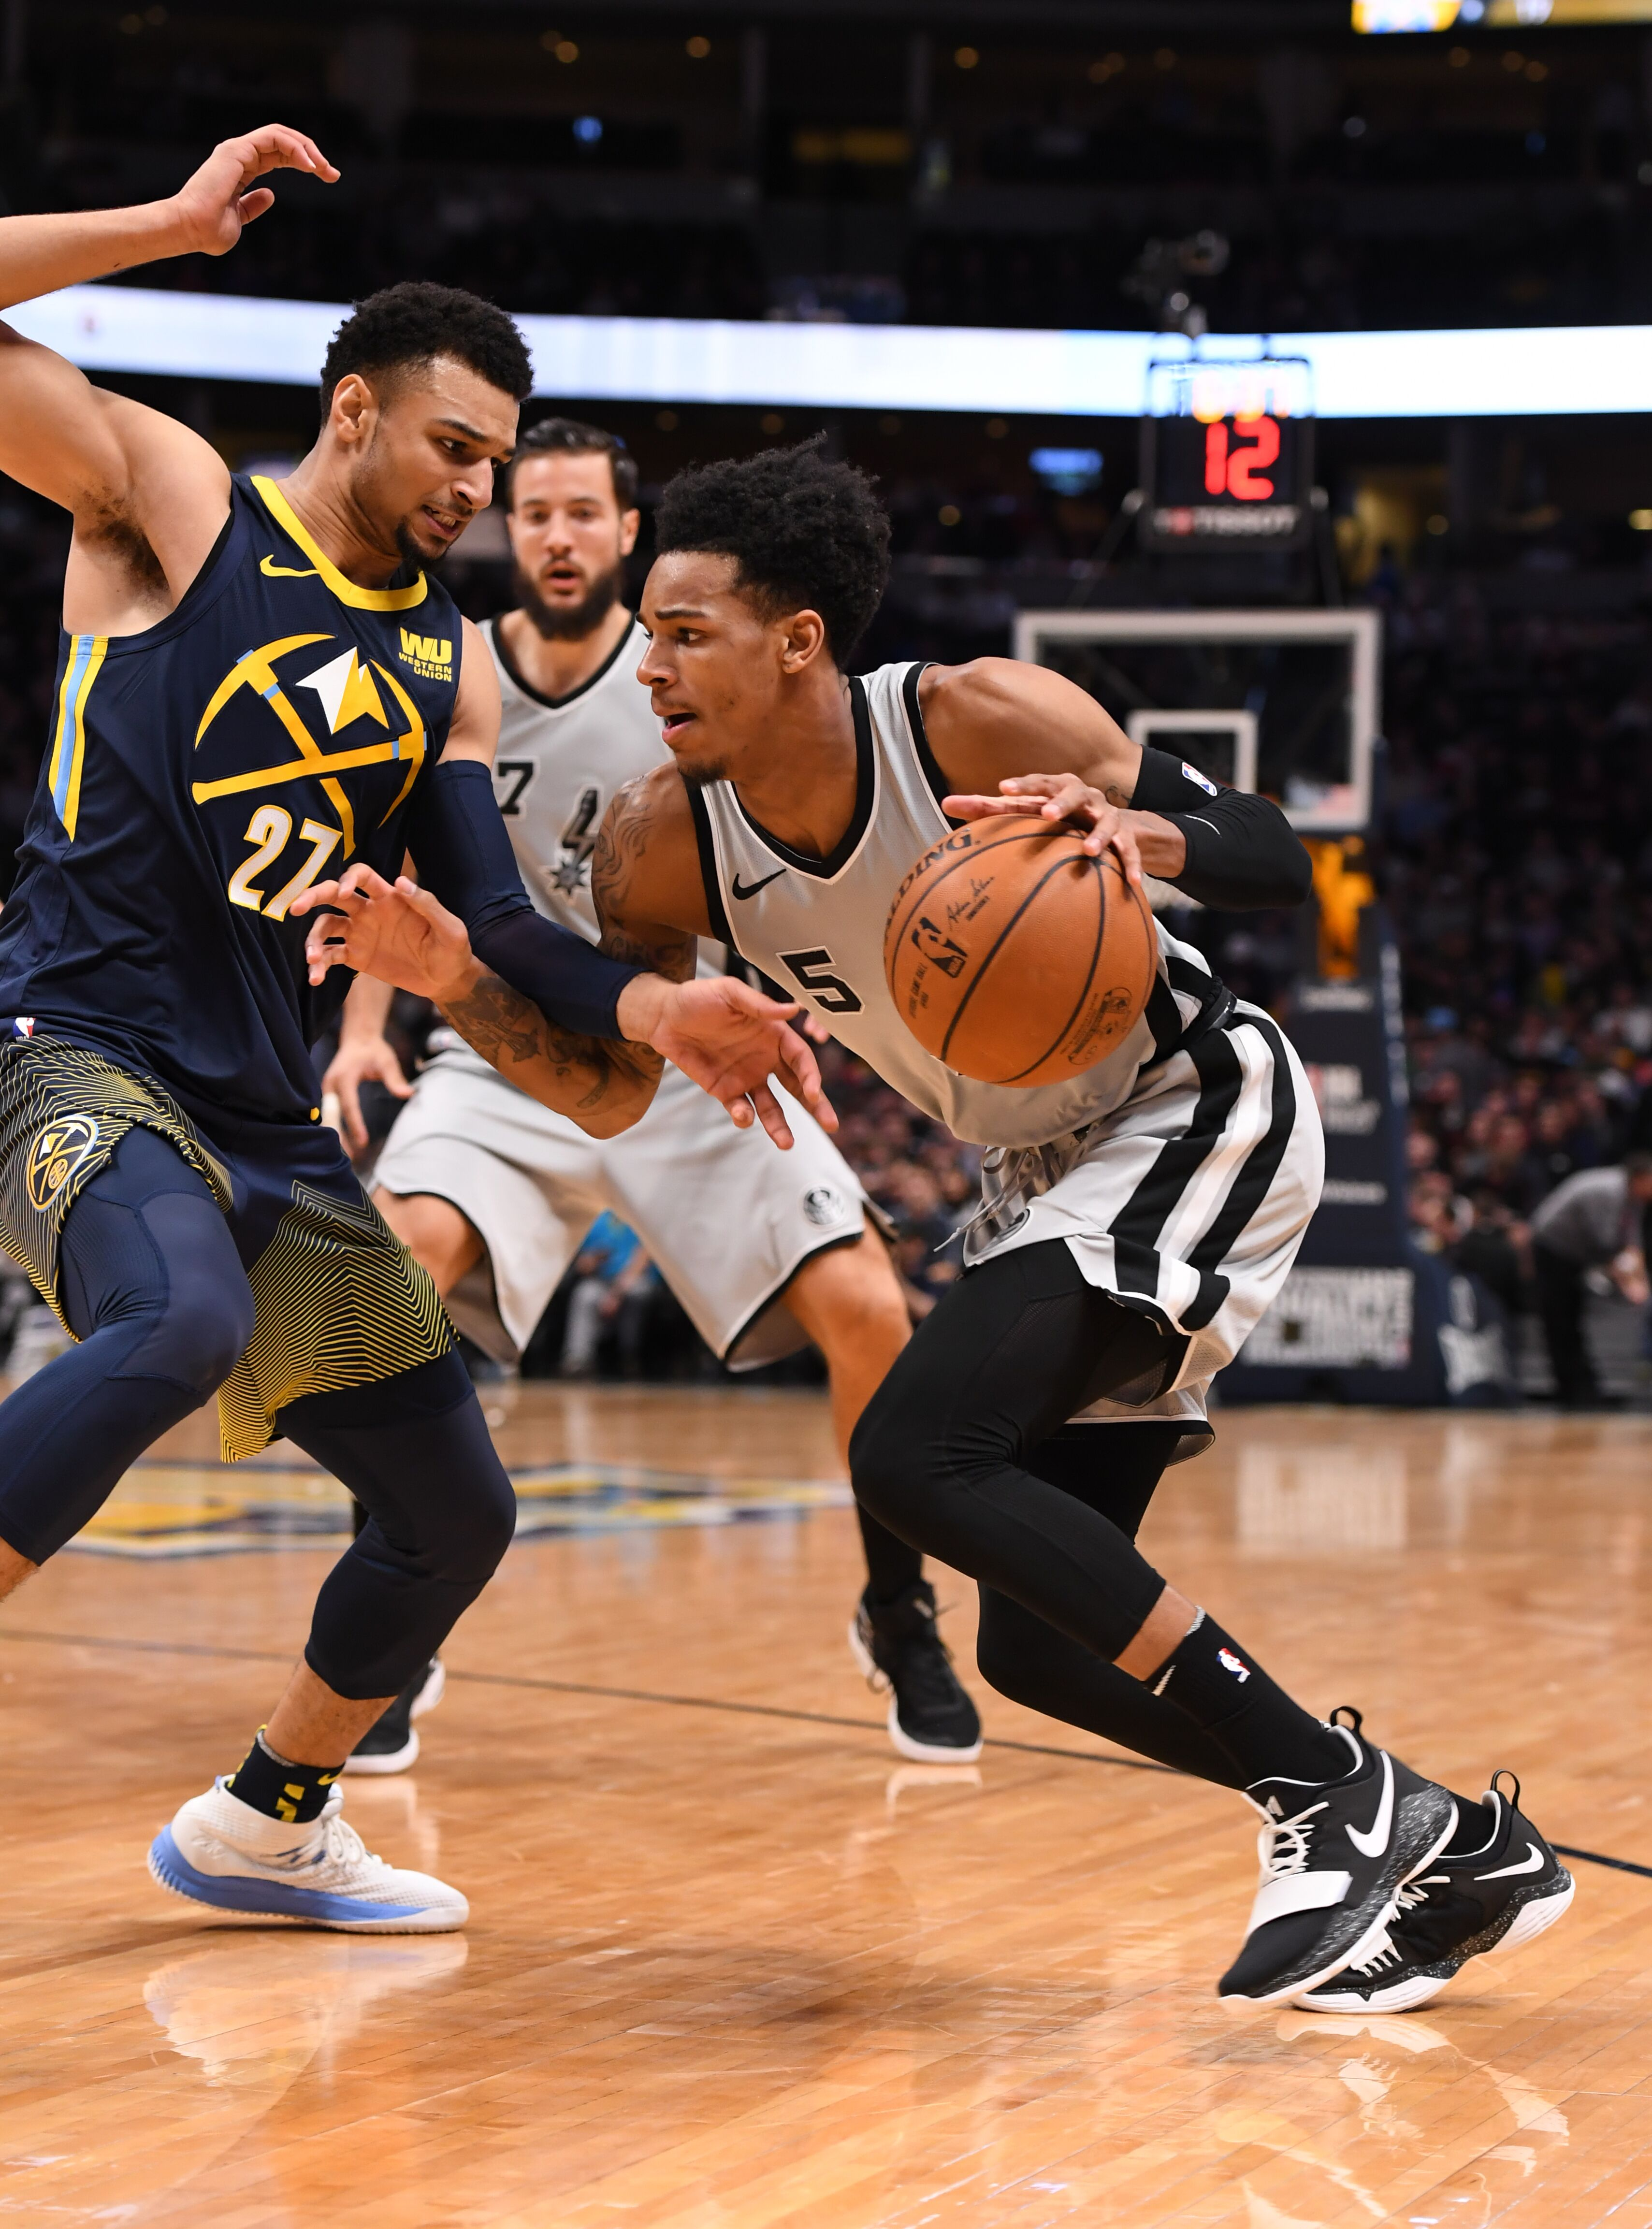 DENVER, CO - FEBRUARY 13: San Antonio Spurs guard Dejounte Murray (5) drives on Denver Nuggets guard Jamal Murray (27) during the first quarter on February 13, 2018 at Pepsi Center. (Photo by John Leyba/The Denver Post via Getty Images)